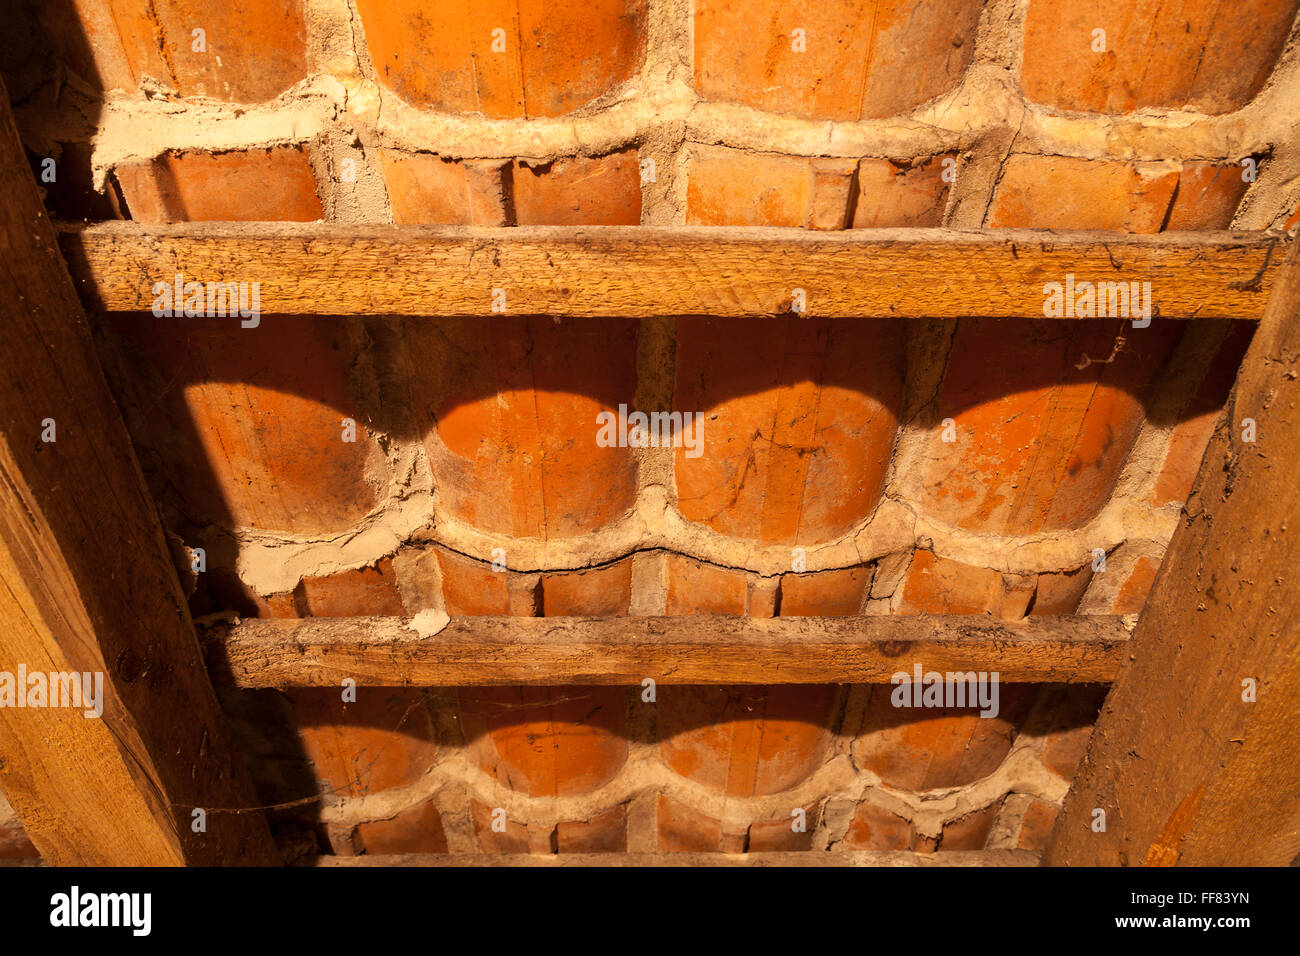 tiles on a roof from attic - Stock Image